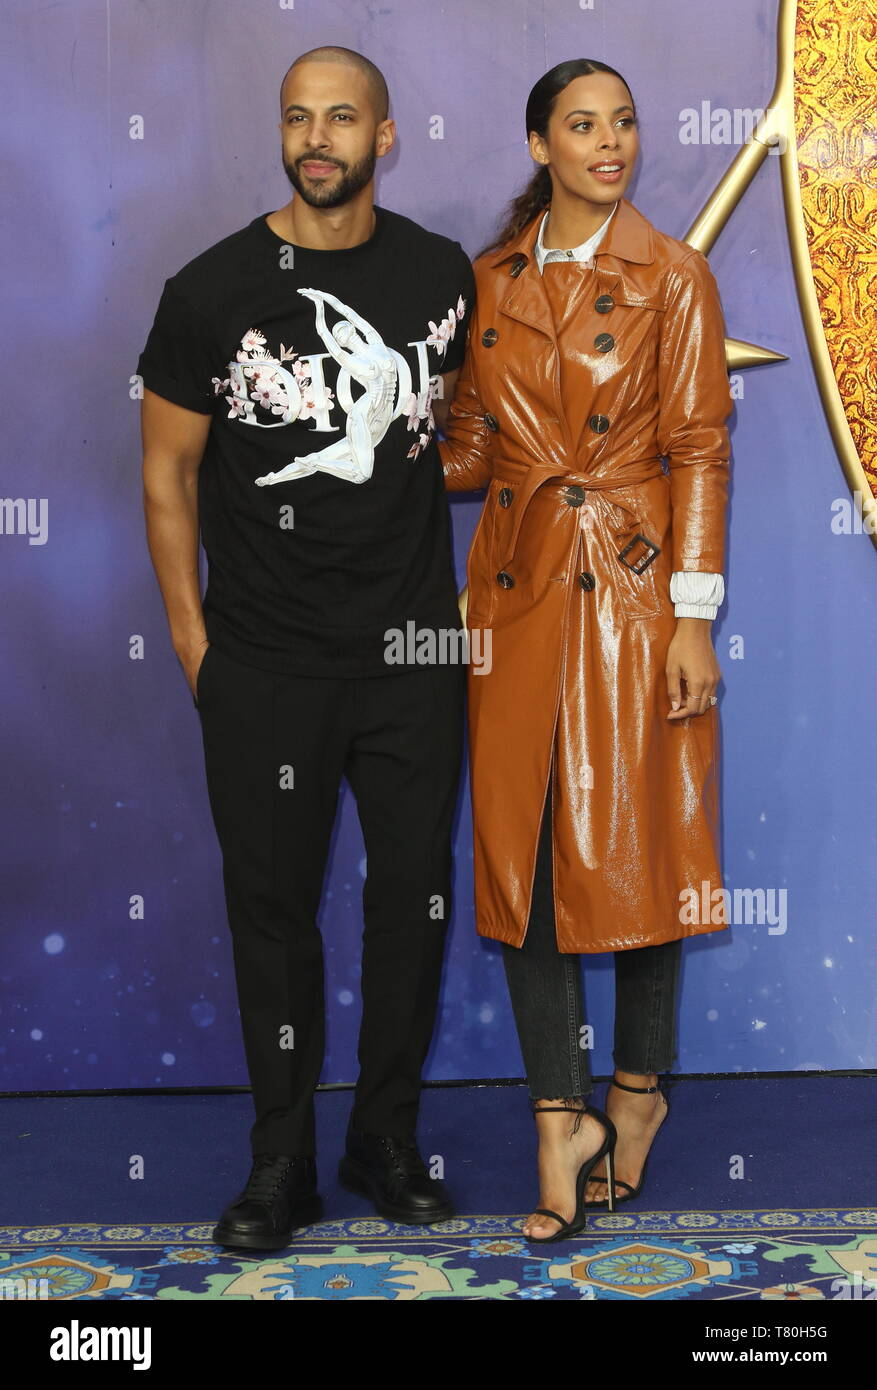 Marvin Humes and Rochelle Humes attends the Aladdin European Gala Screening at the Odeon Luxe Leicester Square - Stock Image